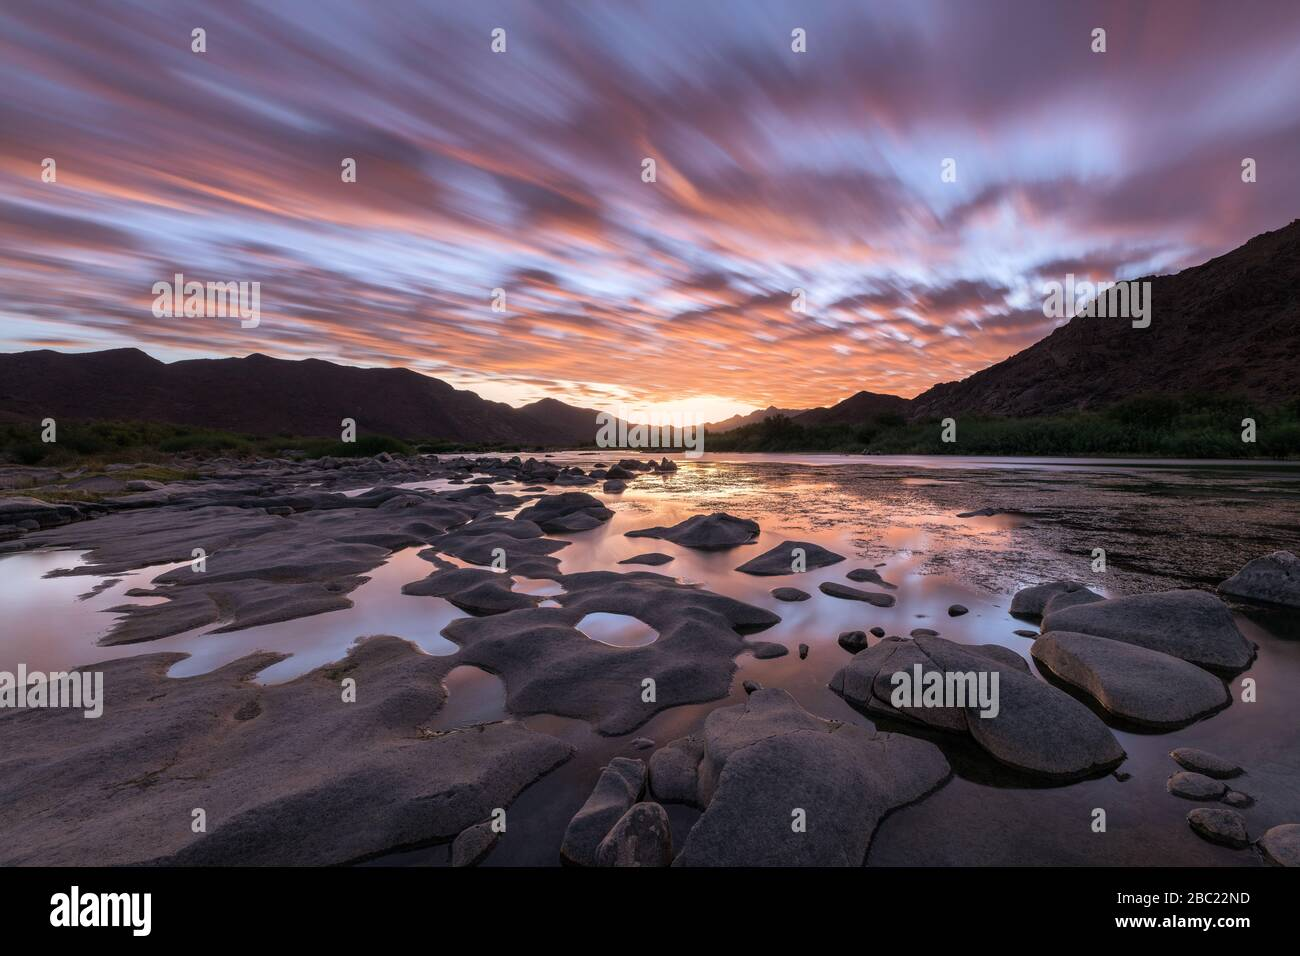 A Beautiful Long Exposure Landscape Taken After Sunset With Mountains And The Orange River With Dramatic Orange Moving Clouds Reflecting In The Water Stock Photo Alamy